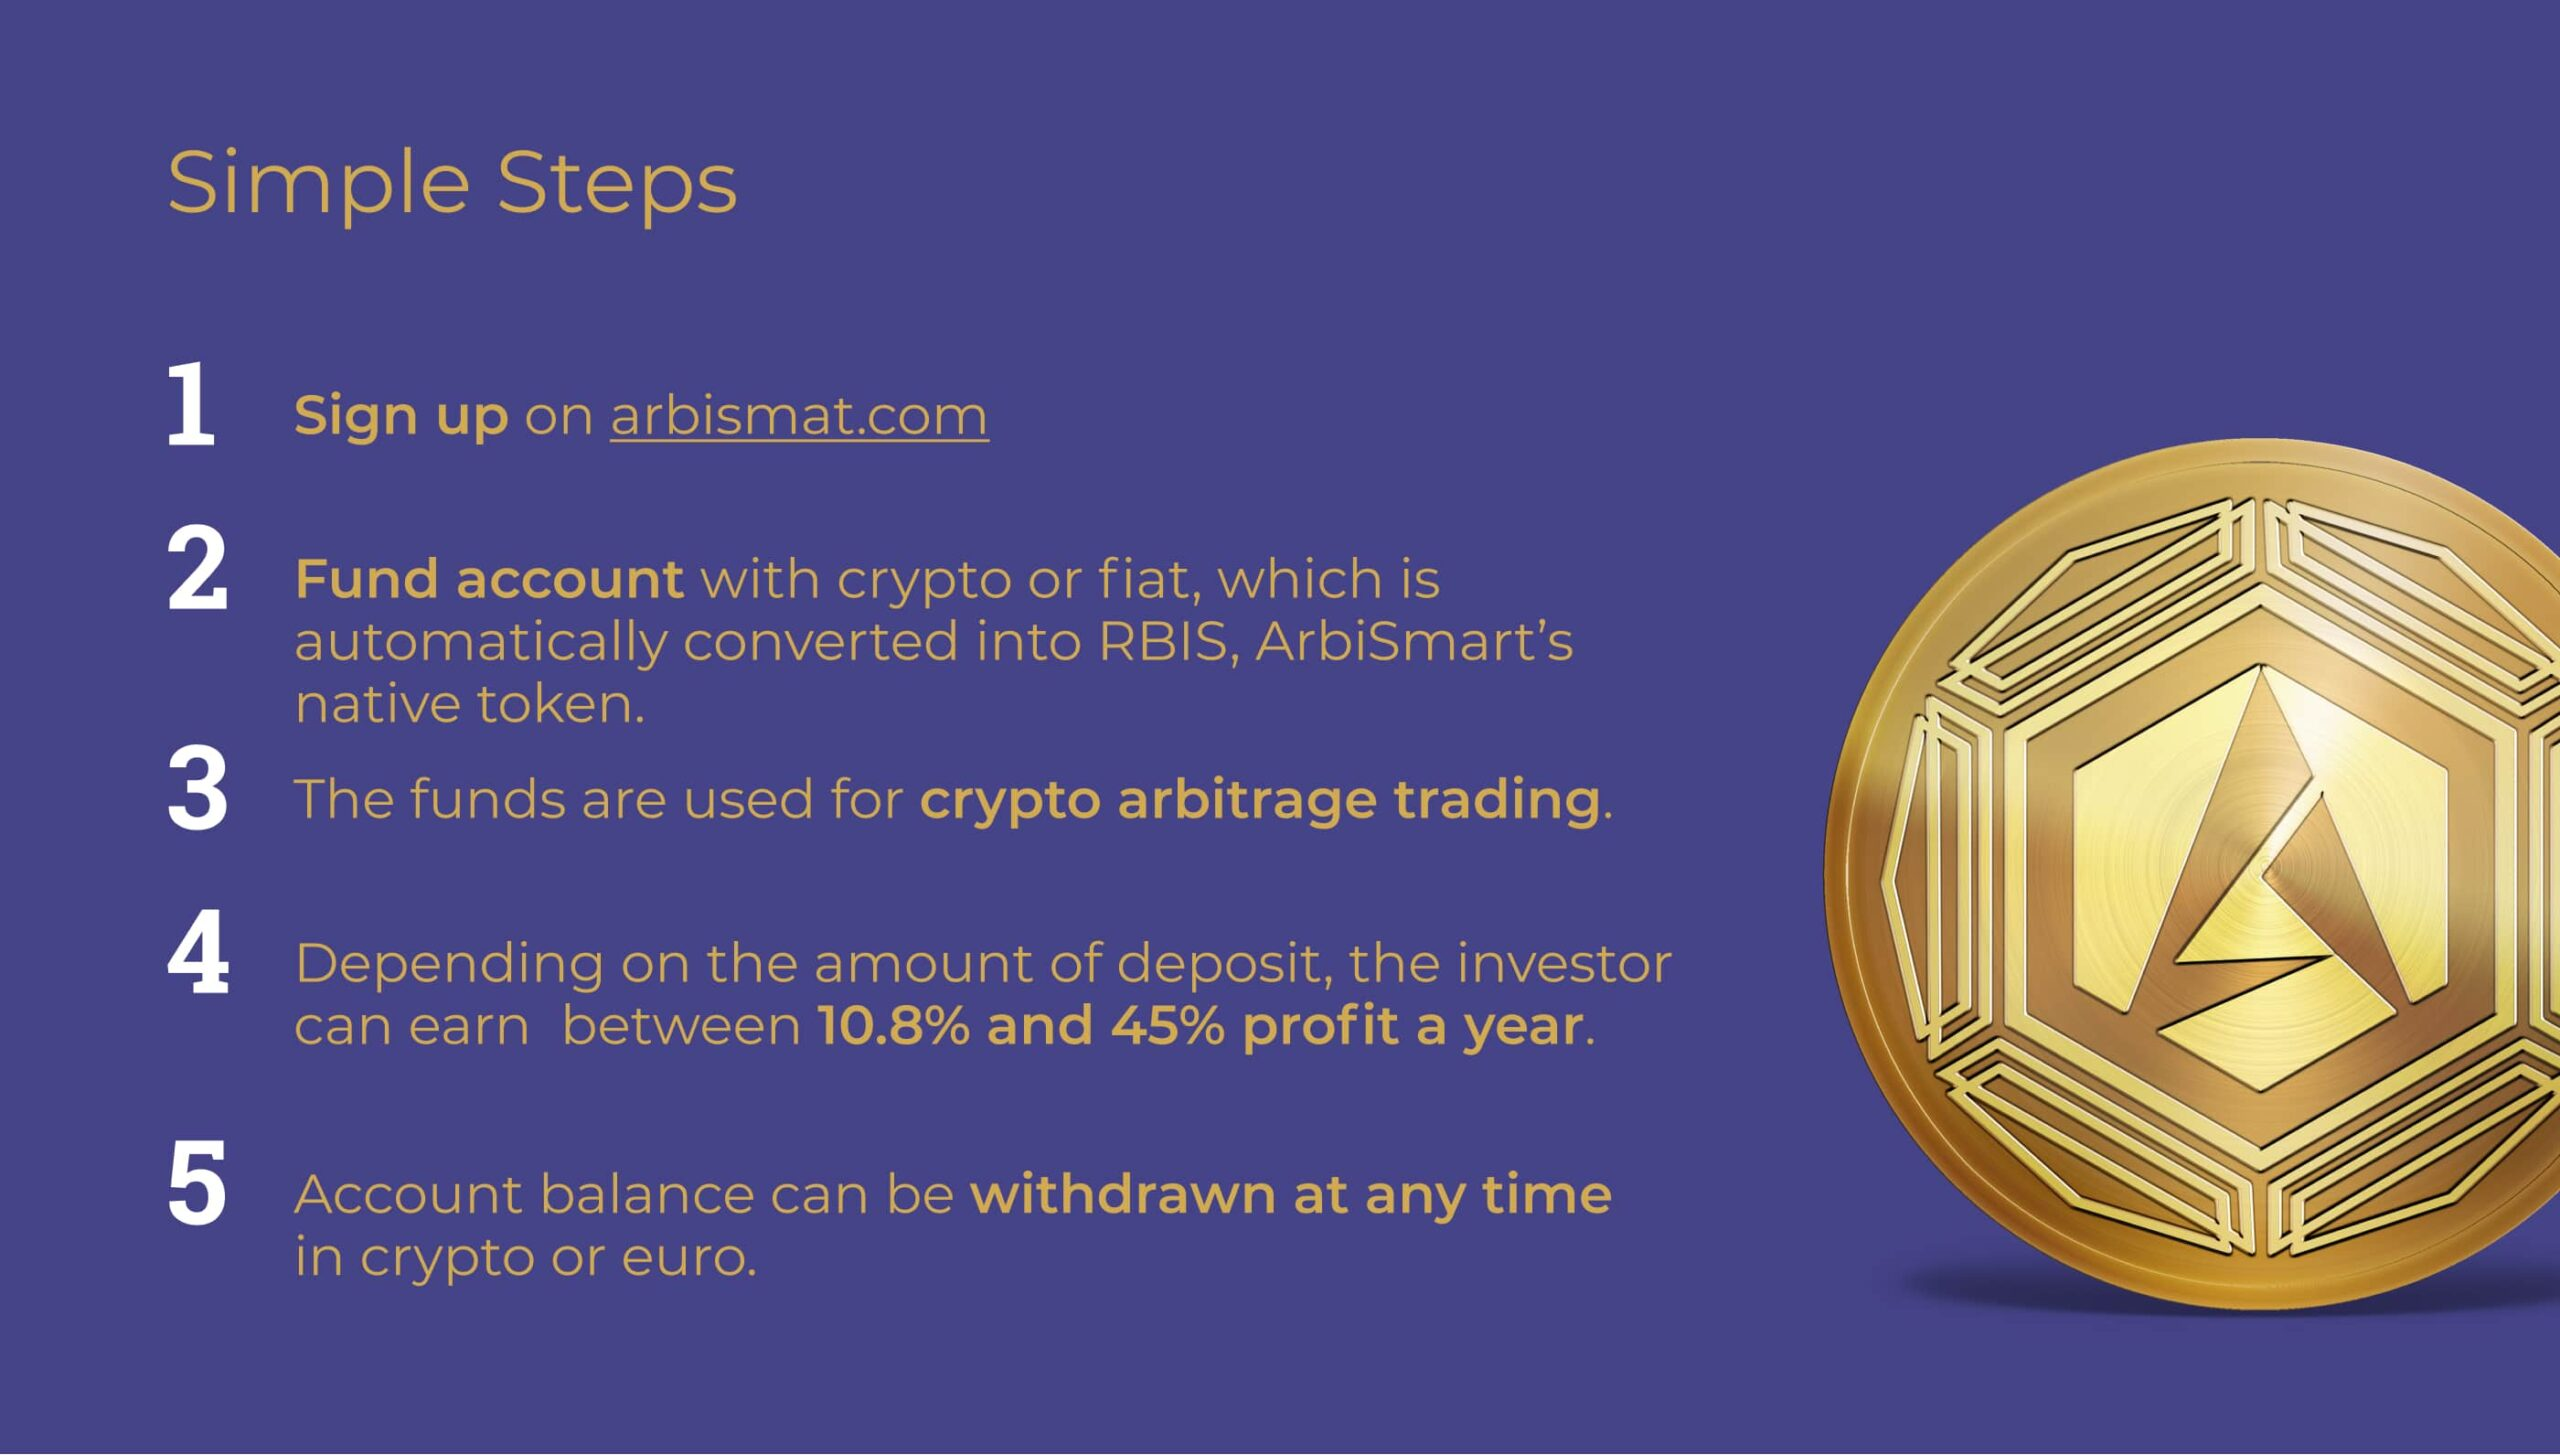 steps to open account on arbismart, how to start earning money with crypto